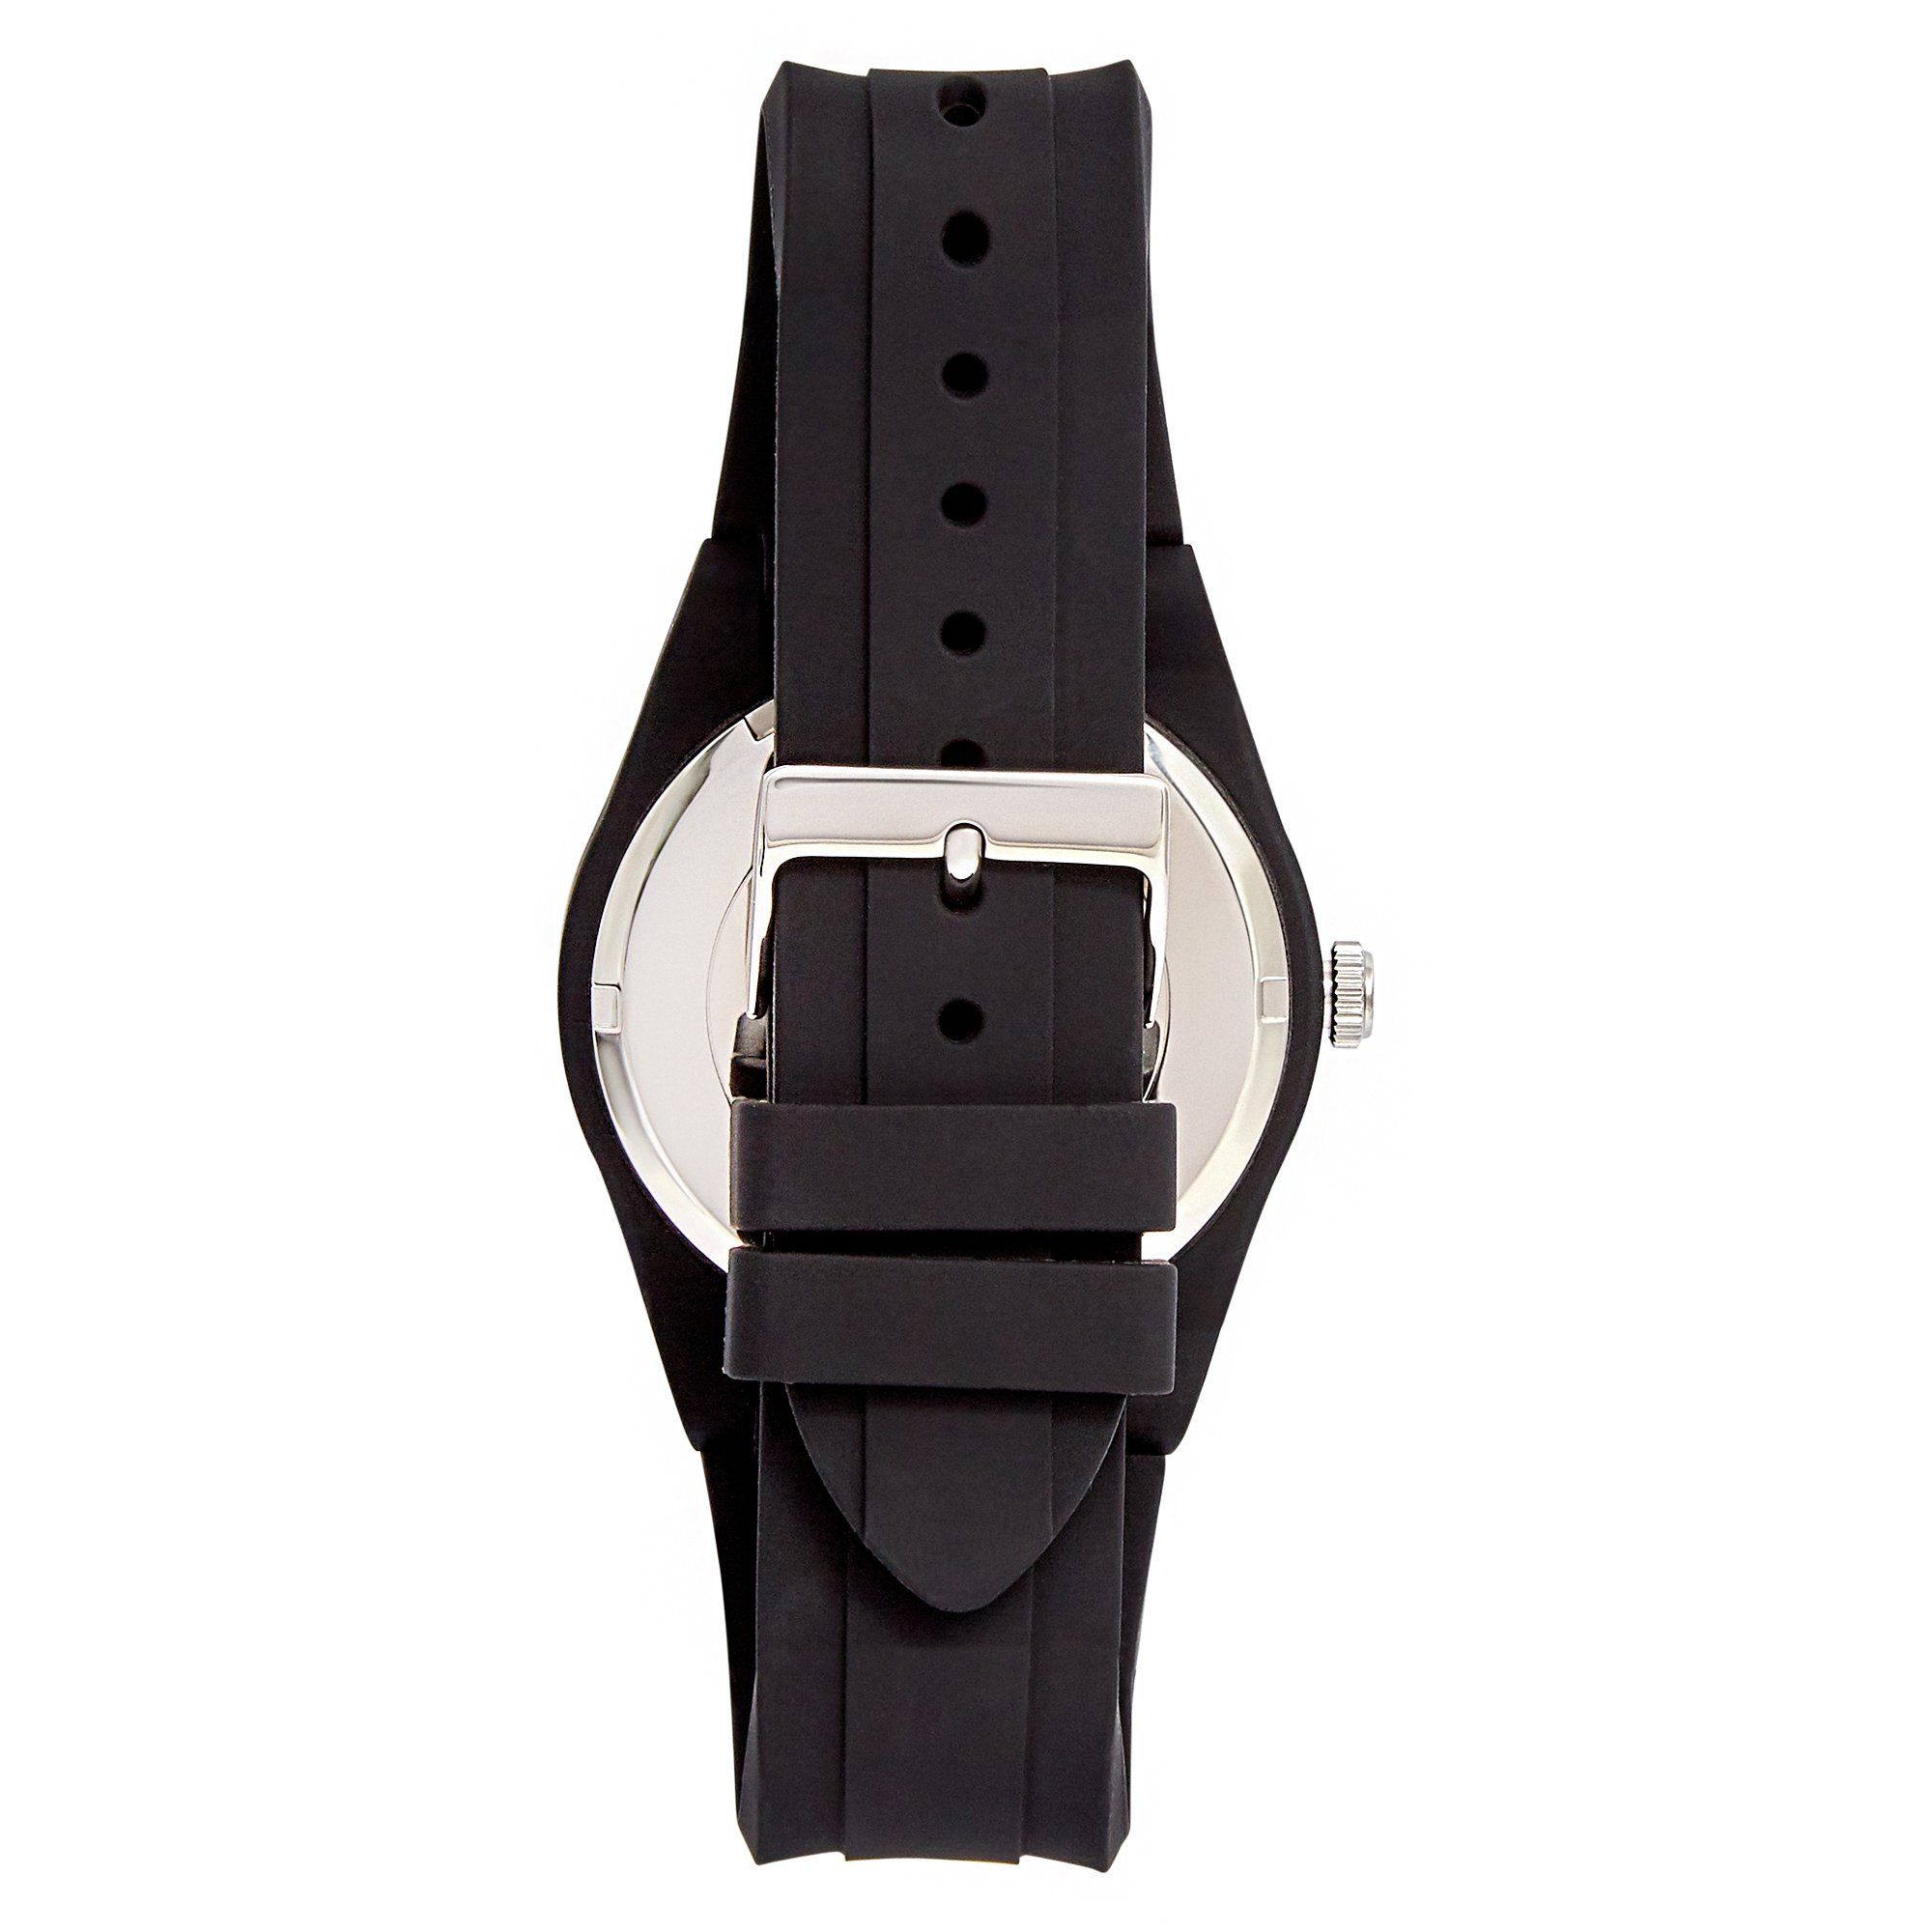 Guess Retro Pop Blk Blk Silc Watches Isbister & Co Wholesale